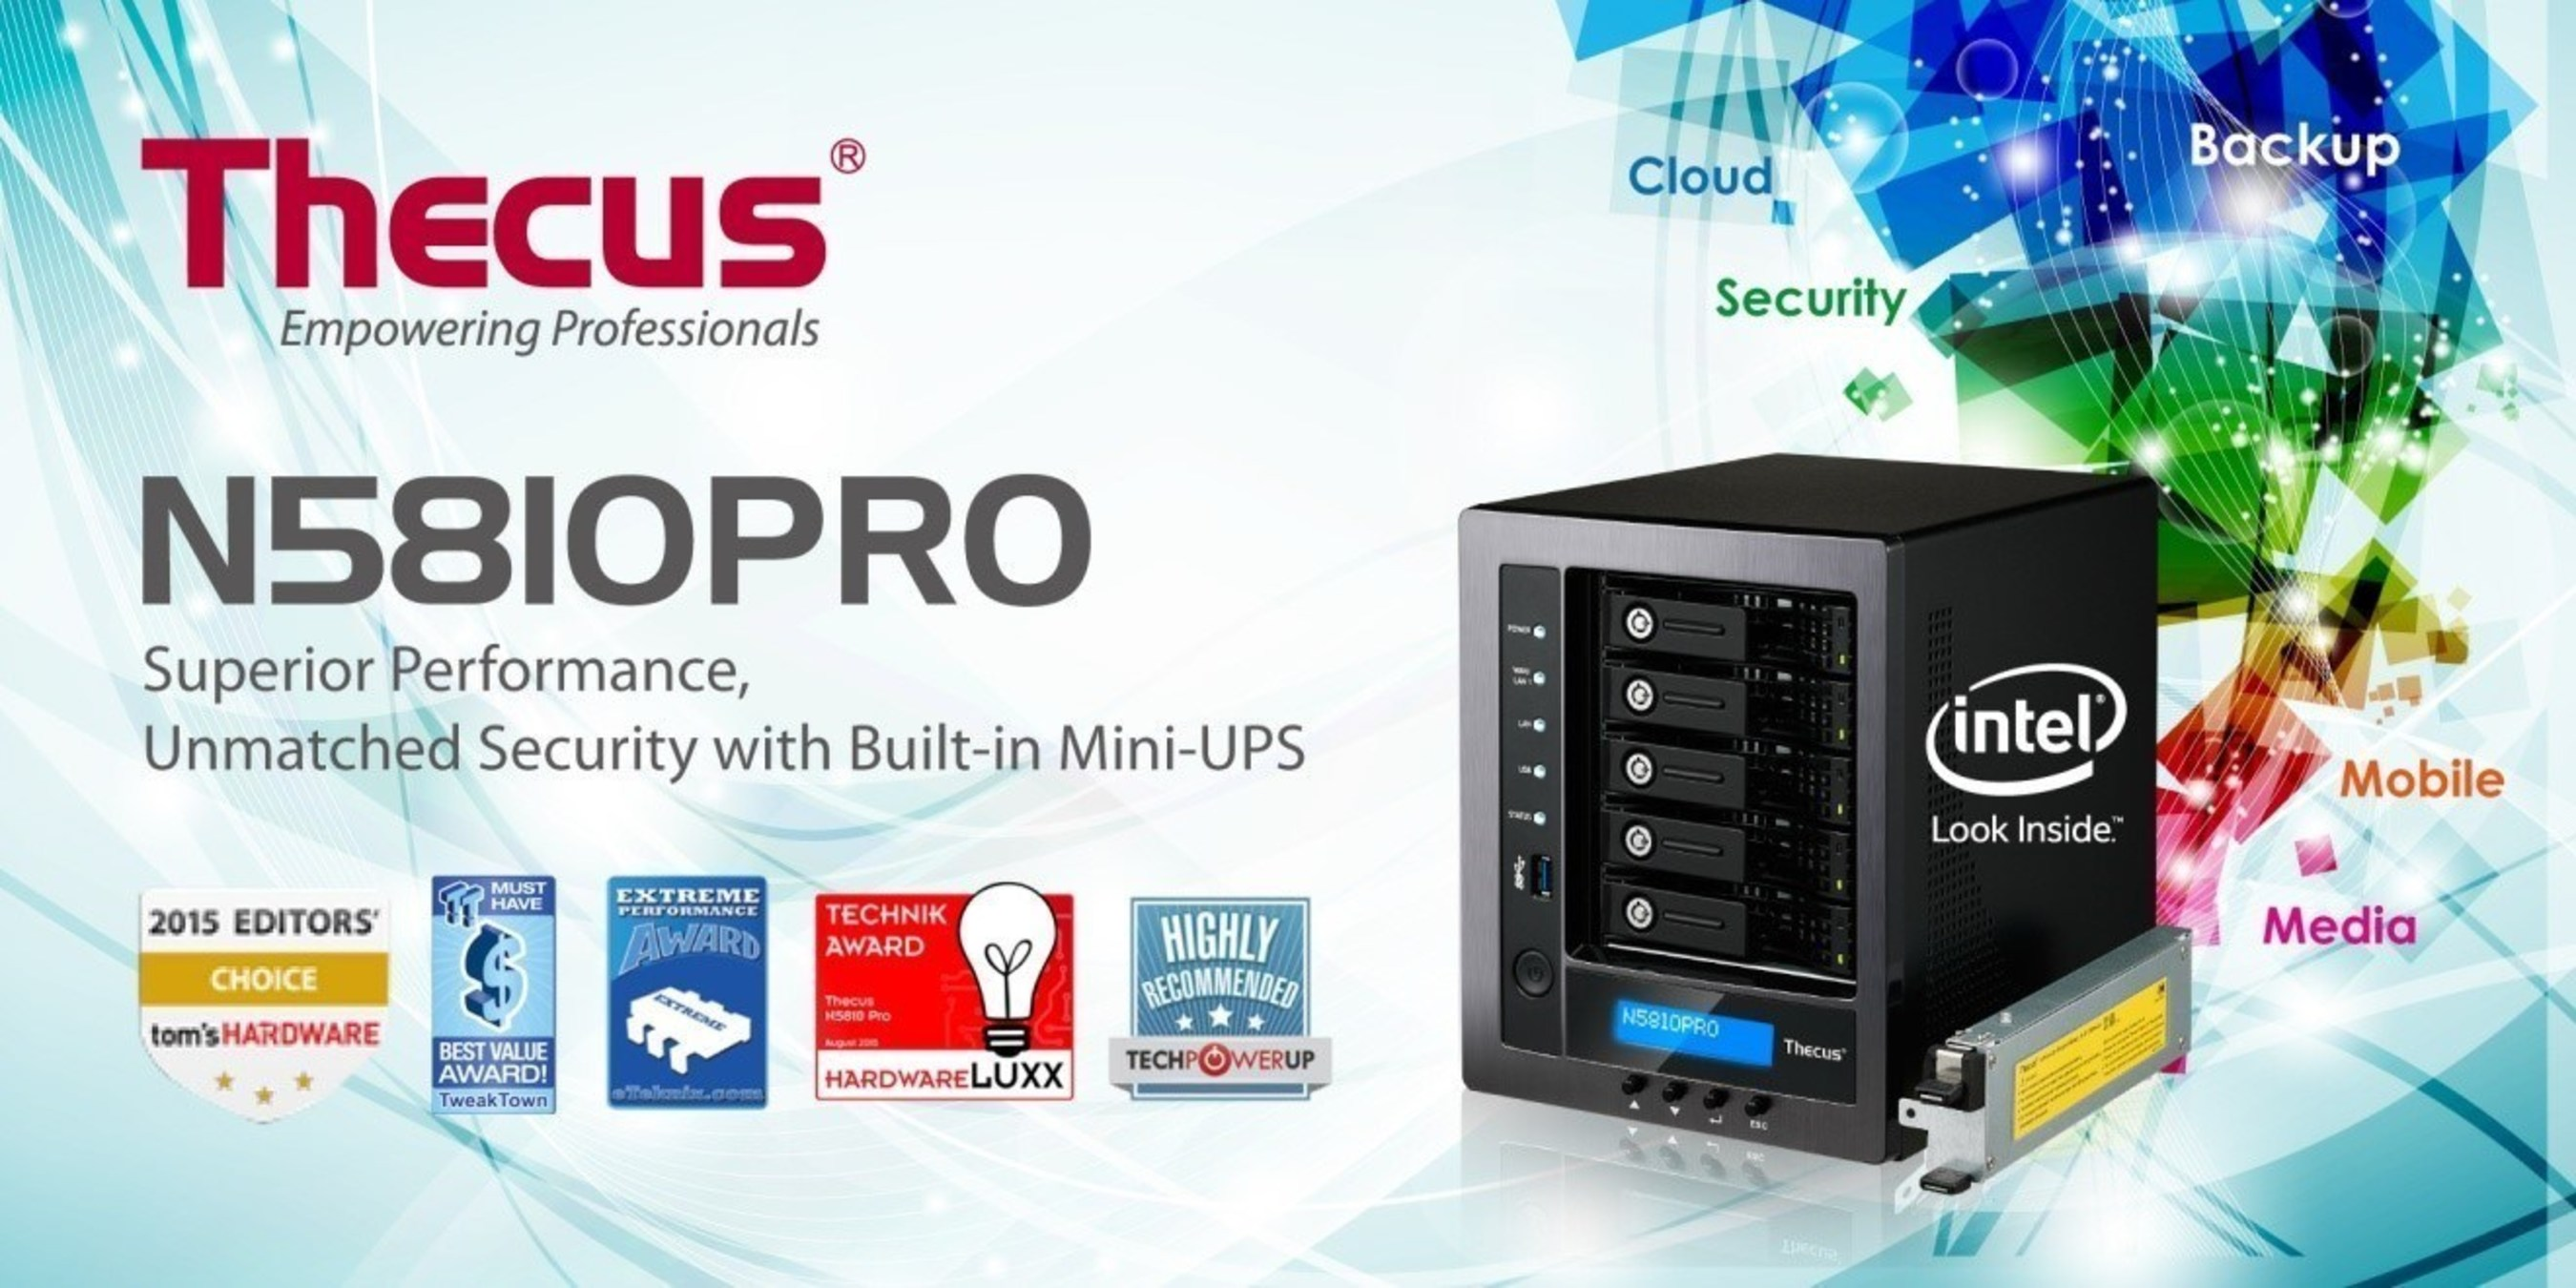 The Next Generation NAS: Thecus' Award-Winning N5810PRO NAS with Built-in Mini-UPS Now Available Globally